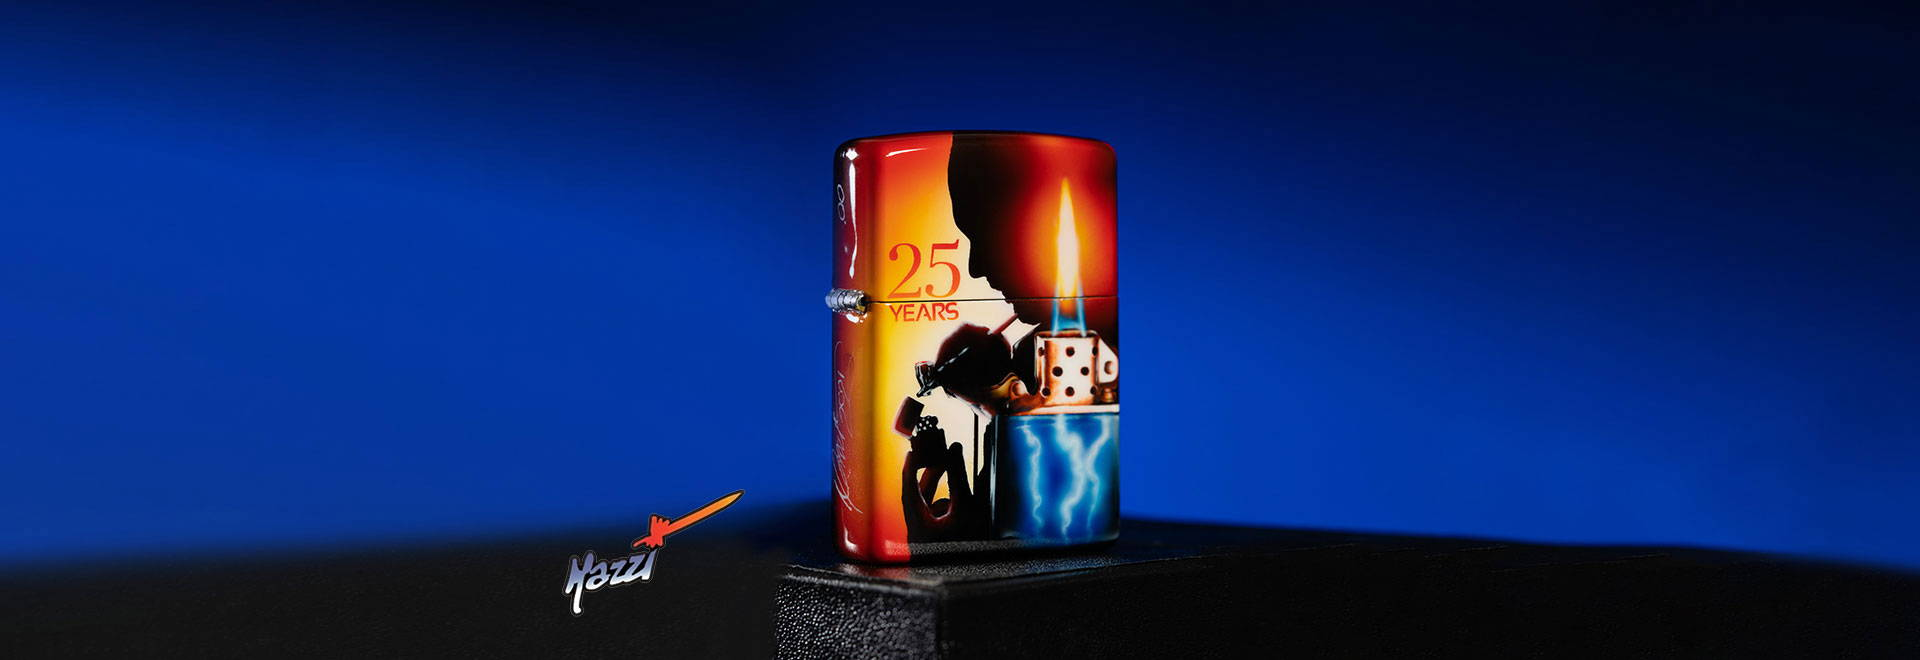 Mazzi 25th Anniversary Collectible Lighter